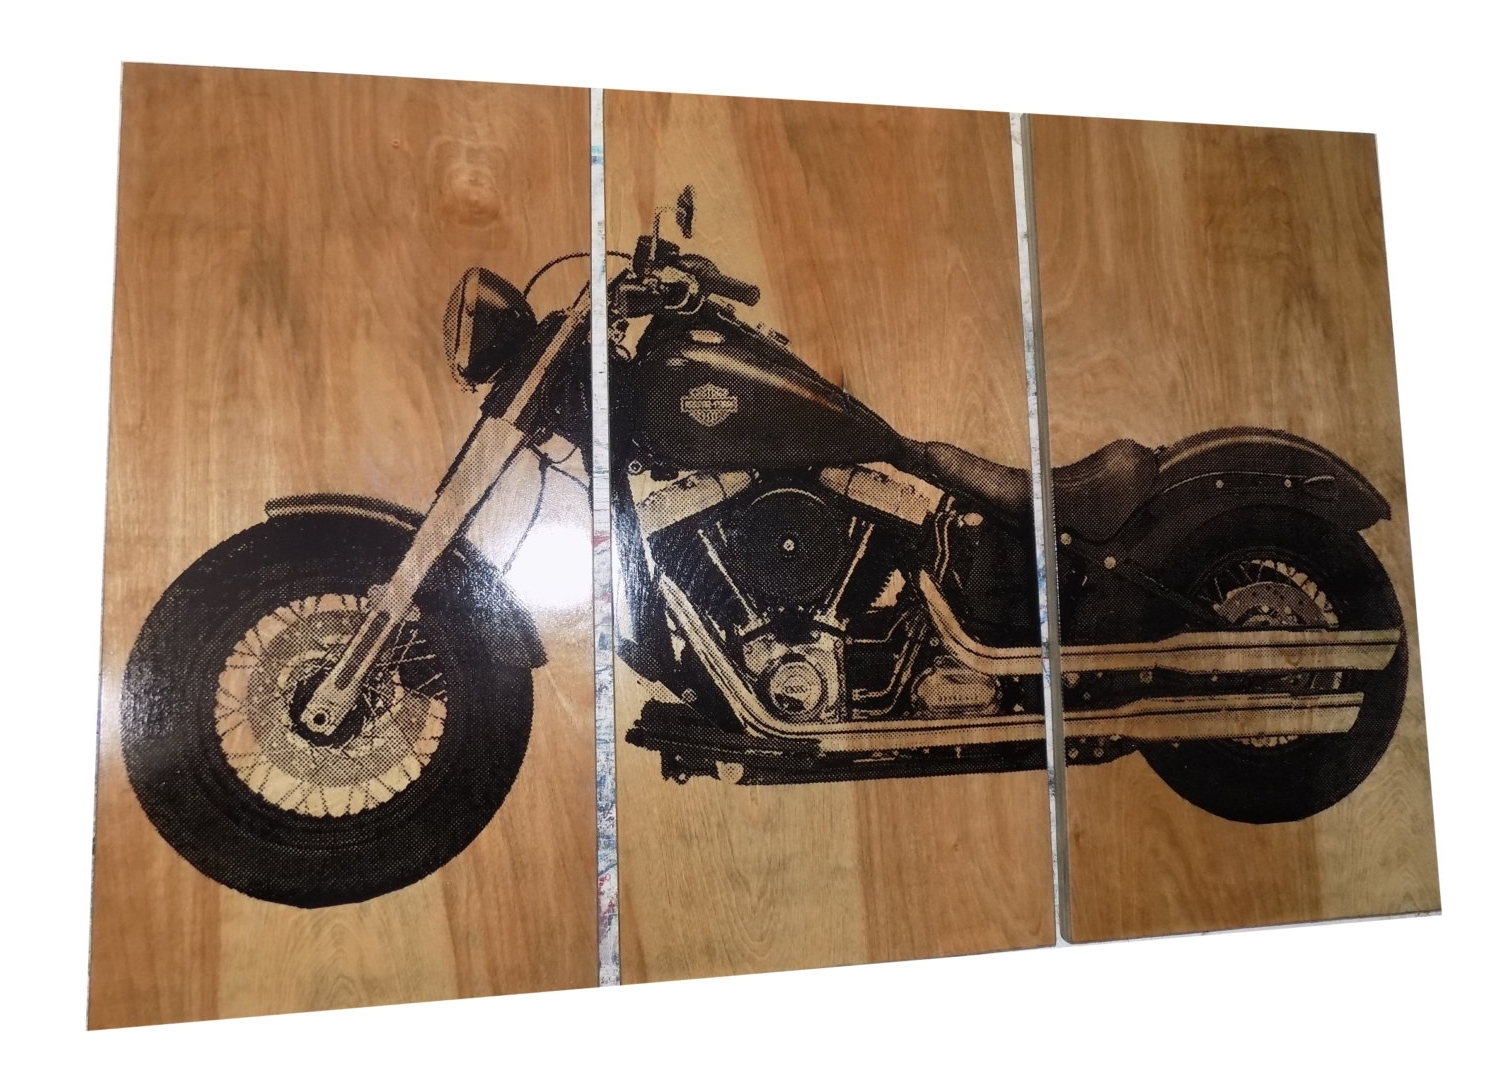 Harley Davidson Wall Art With Well Known Harley Davidson Soft Tail Nice Harley Davidson Wall Art – Prix Dalle (View 11 of 20)